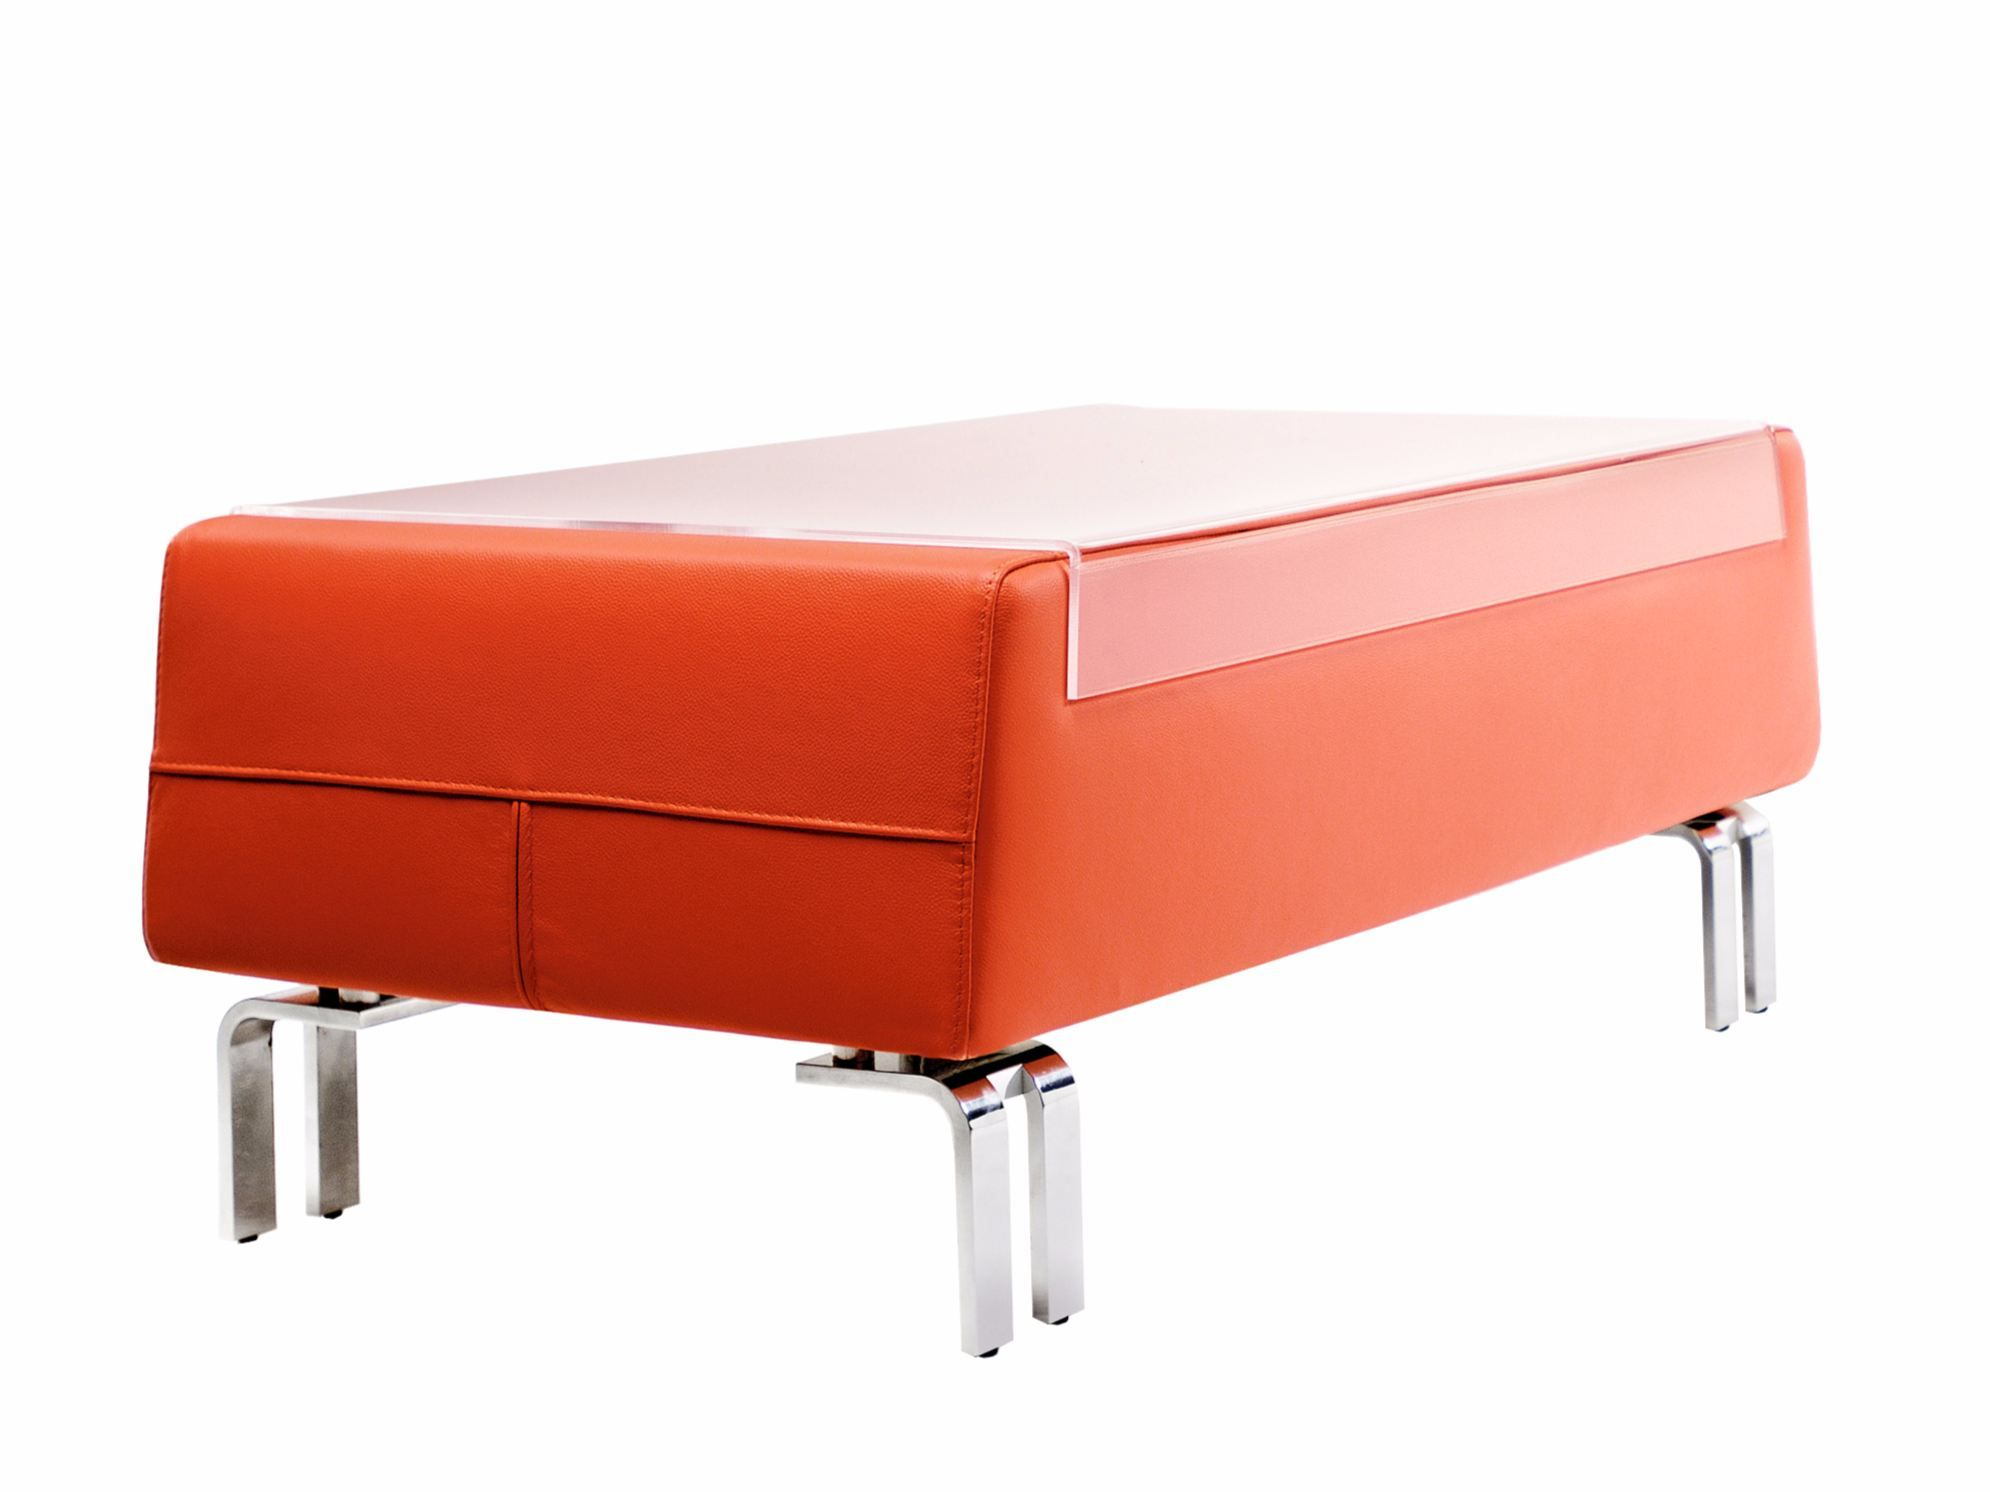 INOUT Bench InOut Collection by Luxy design Luxy R